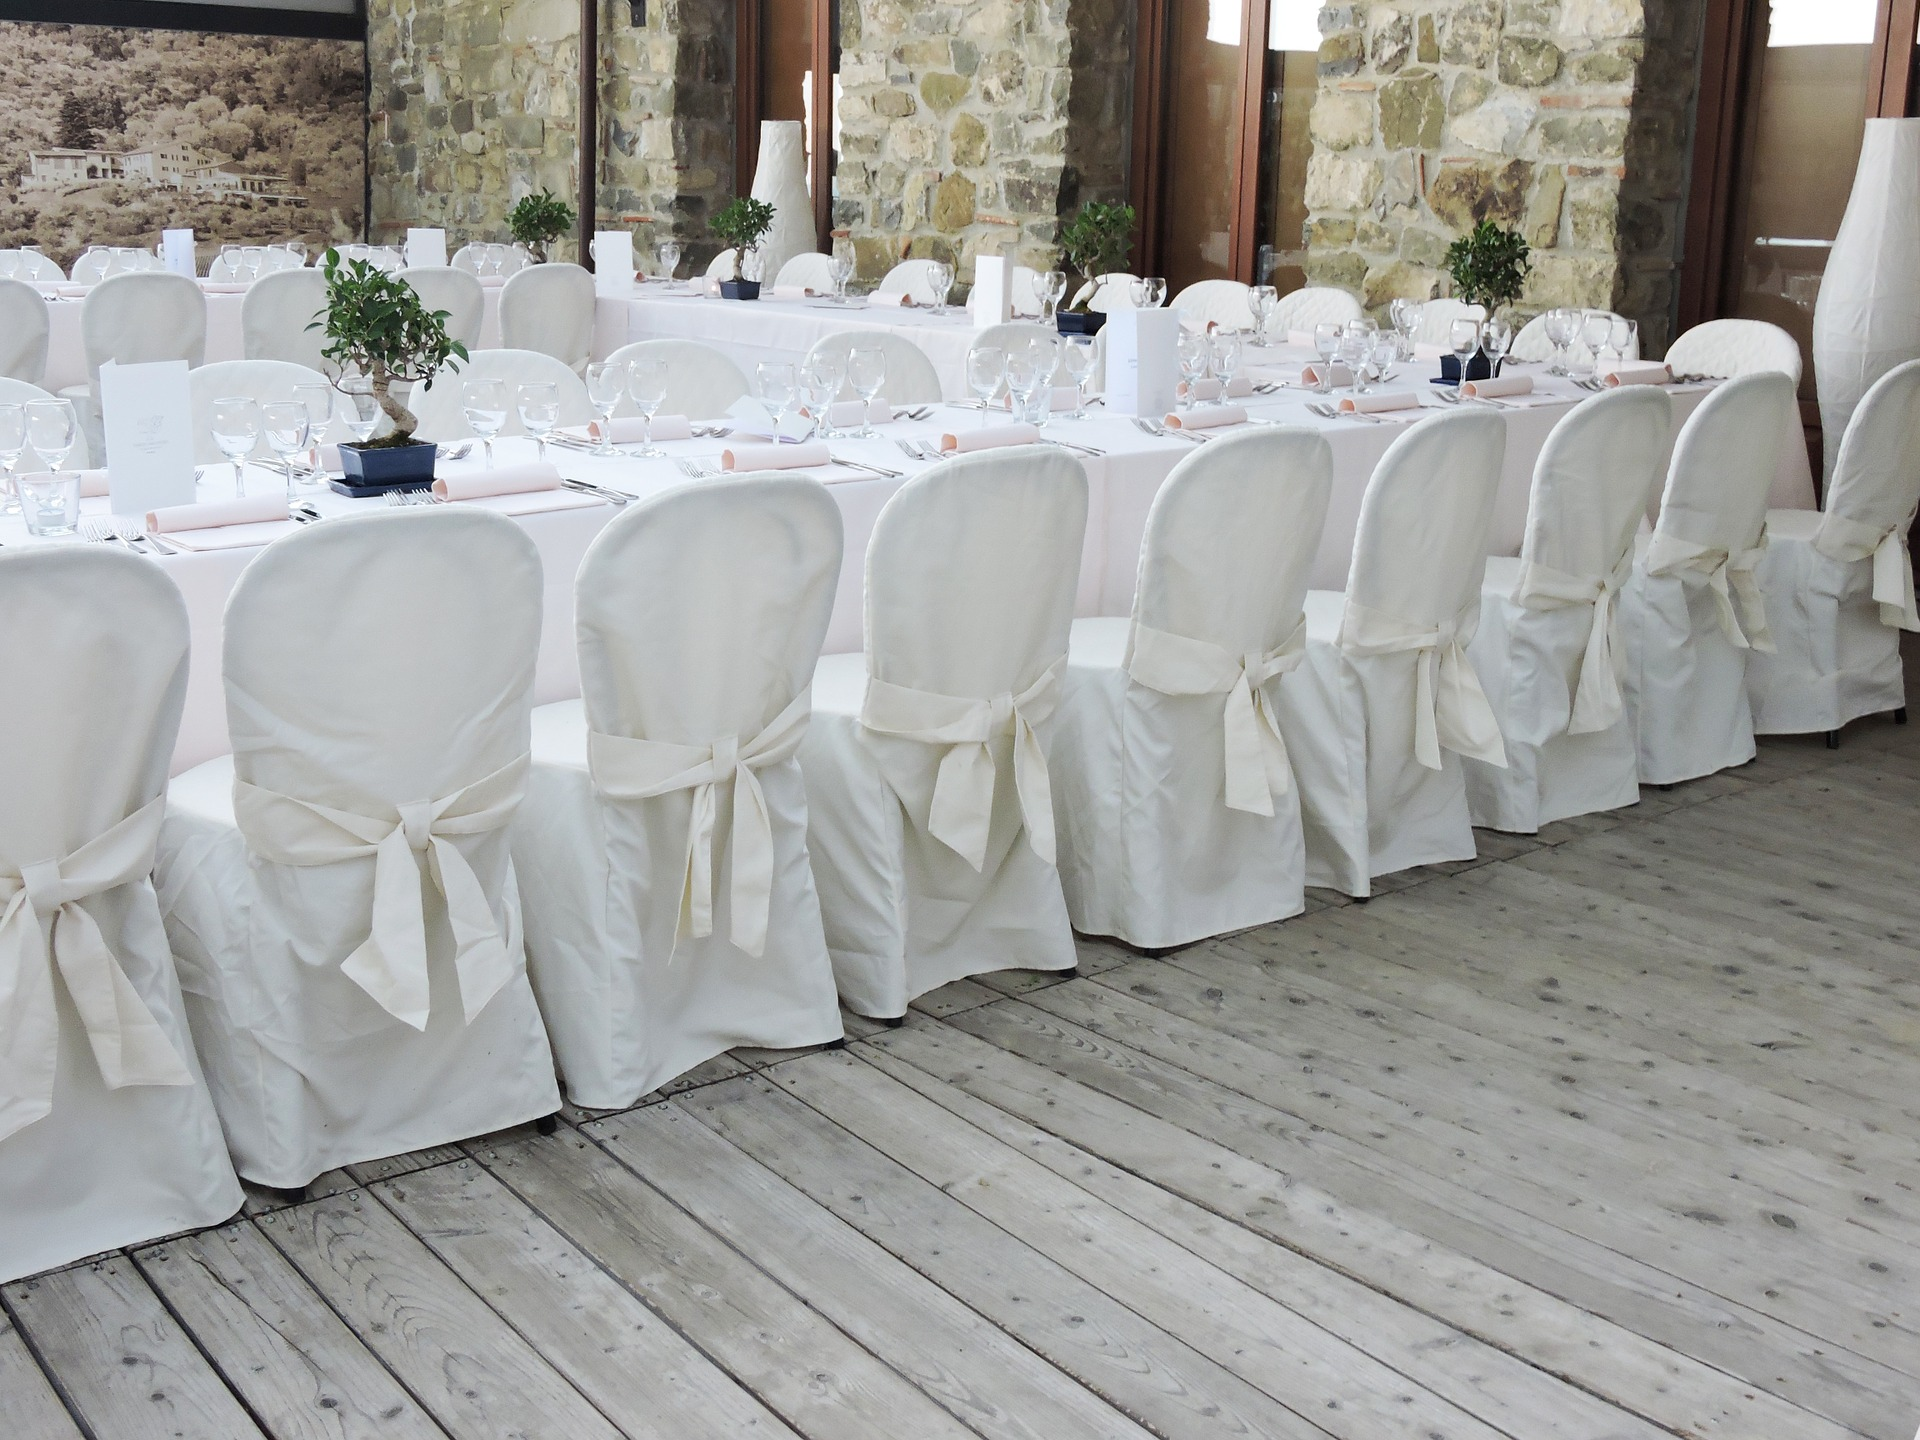 Comment organiser son mariage ? 1